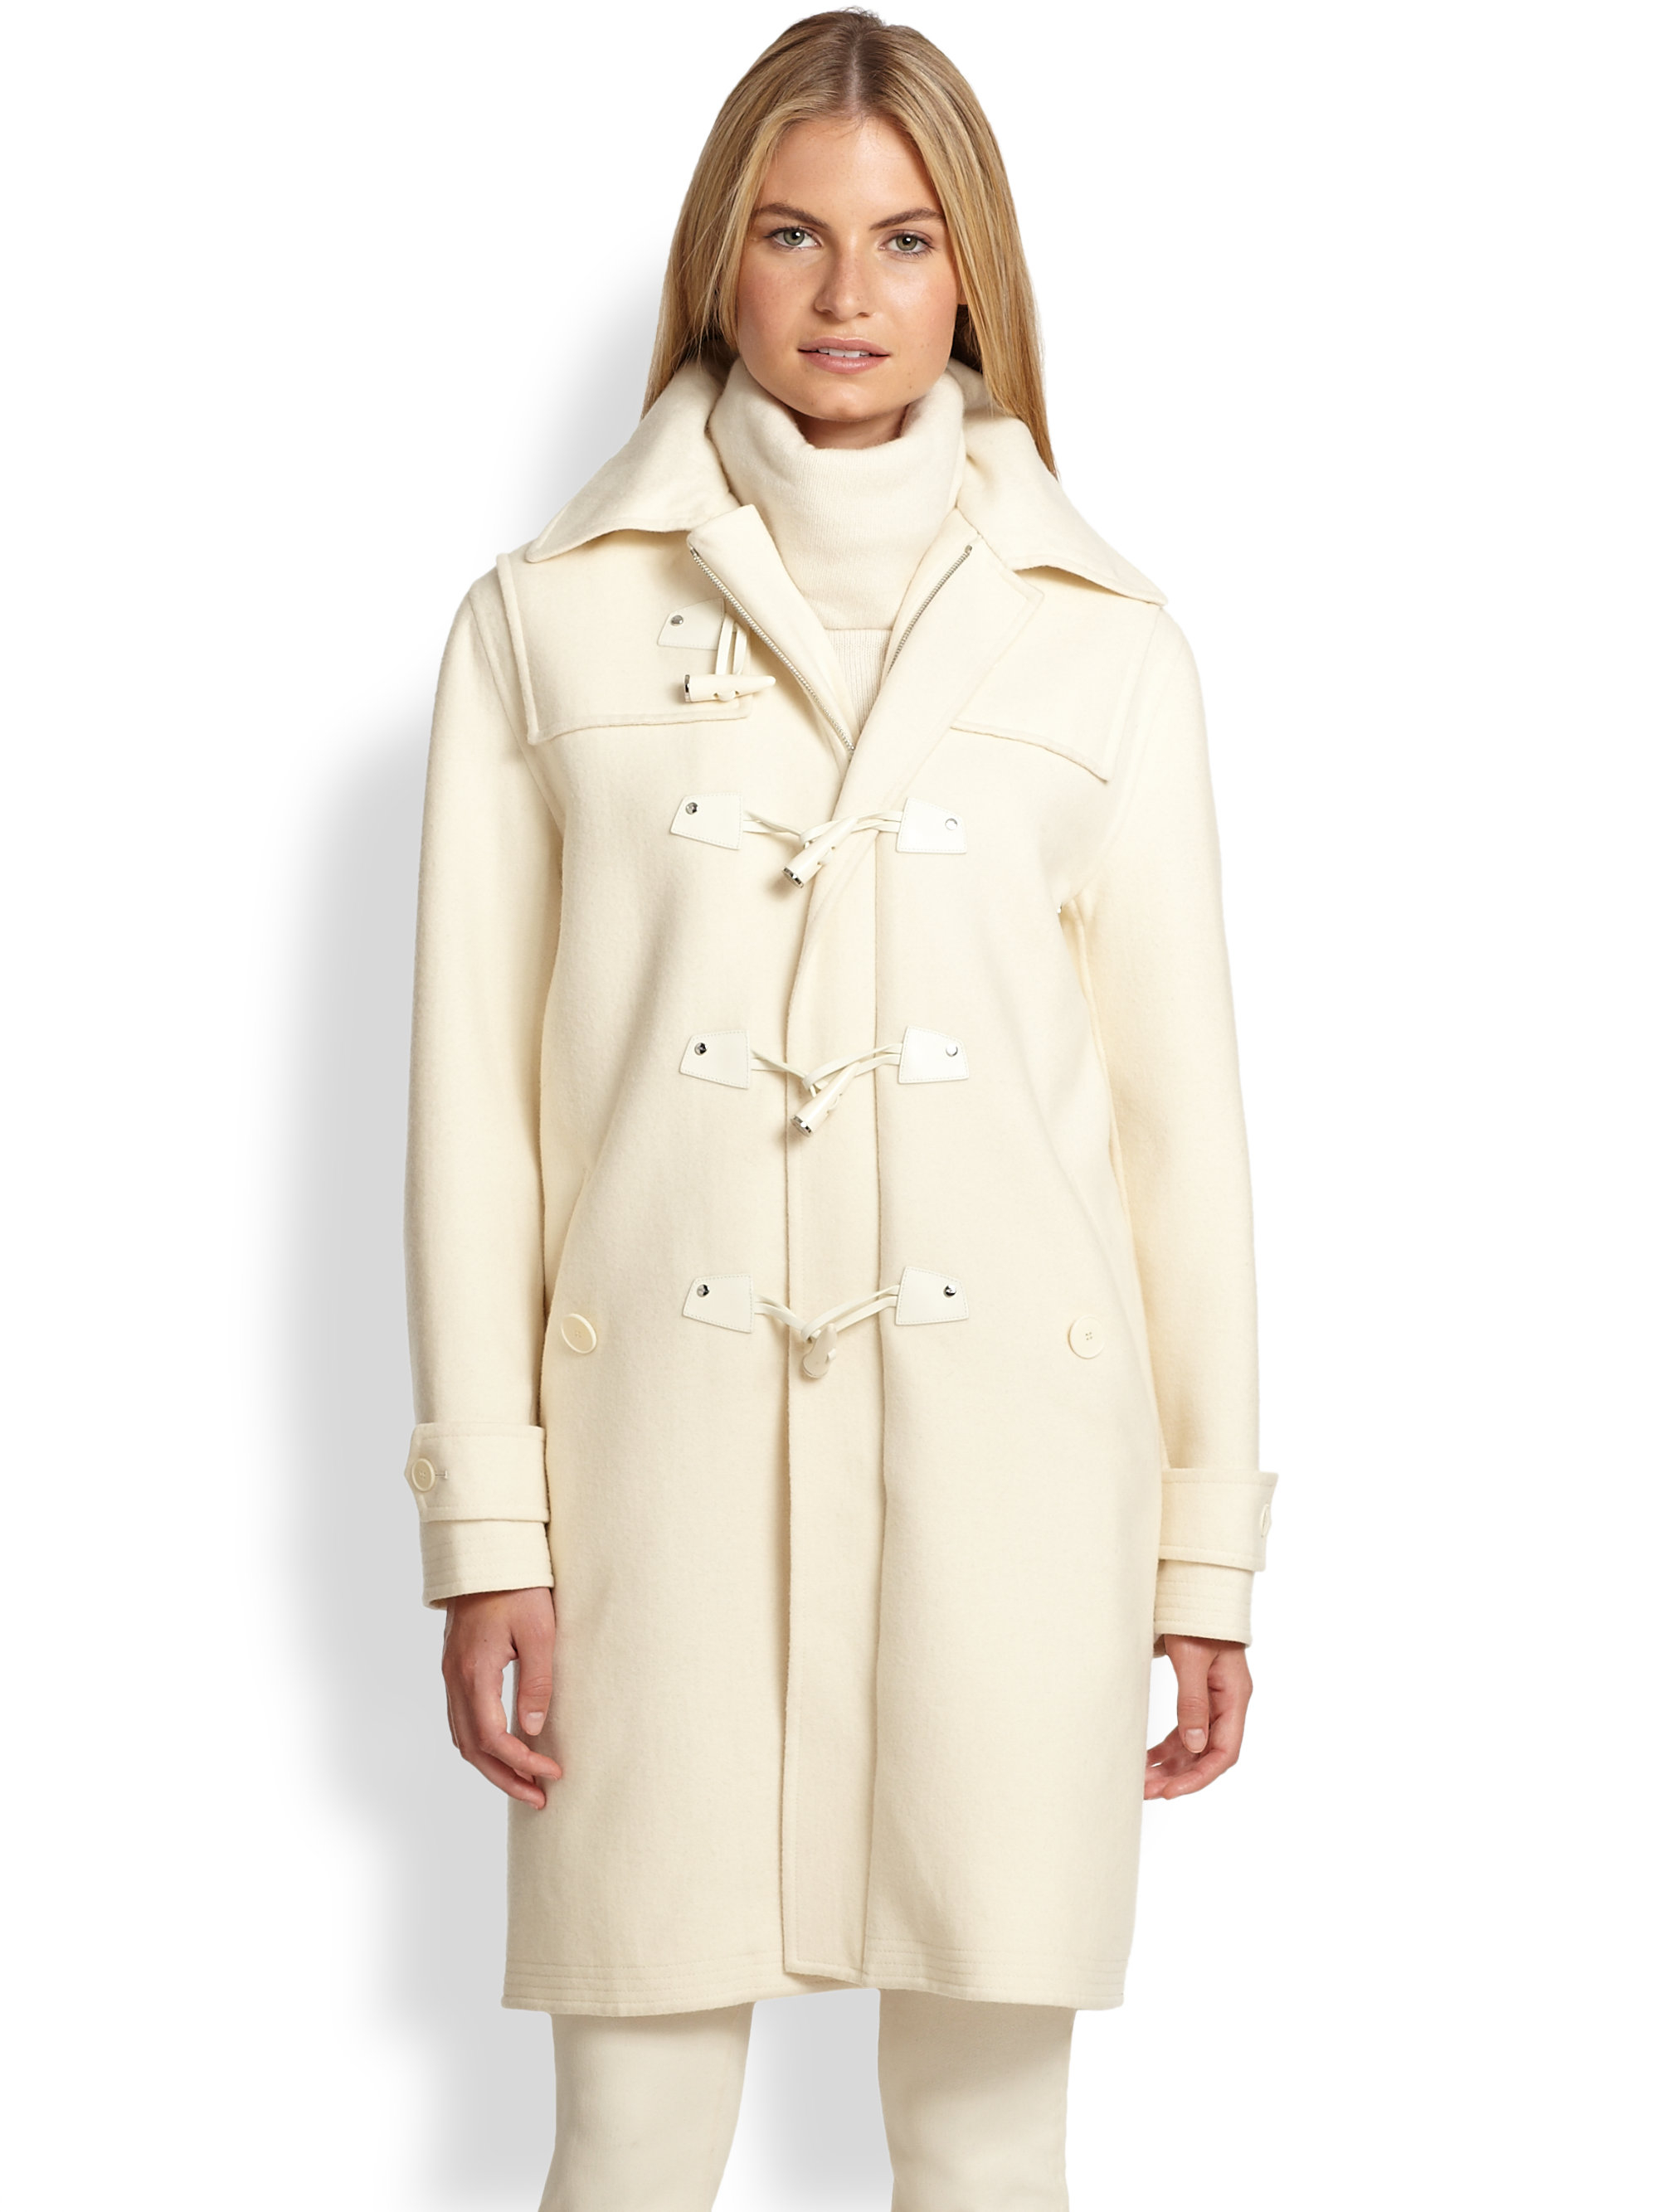 Ralph lauren black label Garrett Wool Duffle Coat in White | Lyst